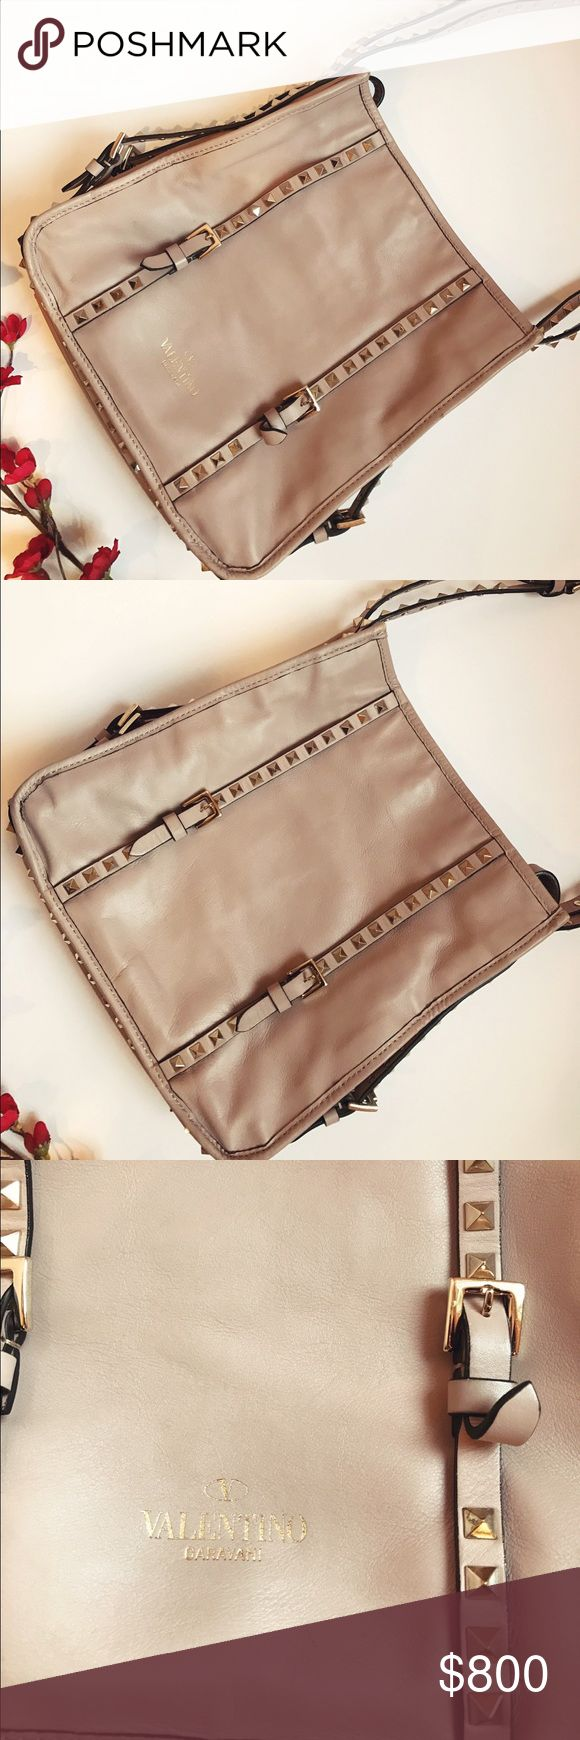 """Valentino Rockstud Bag - Authentic Valentino  - Rockstud Bag  - Excellent Condition  - Length 11"""" by 10 1/2""""  - Width 2 1/2""""  - Straps from bag 14""""  - Color: light purple/pink Valentino Garavani Bags Shoulder Bags"""